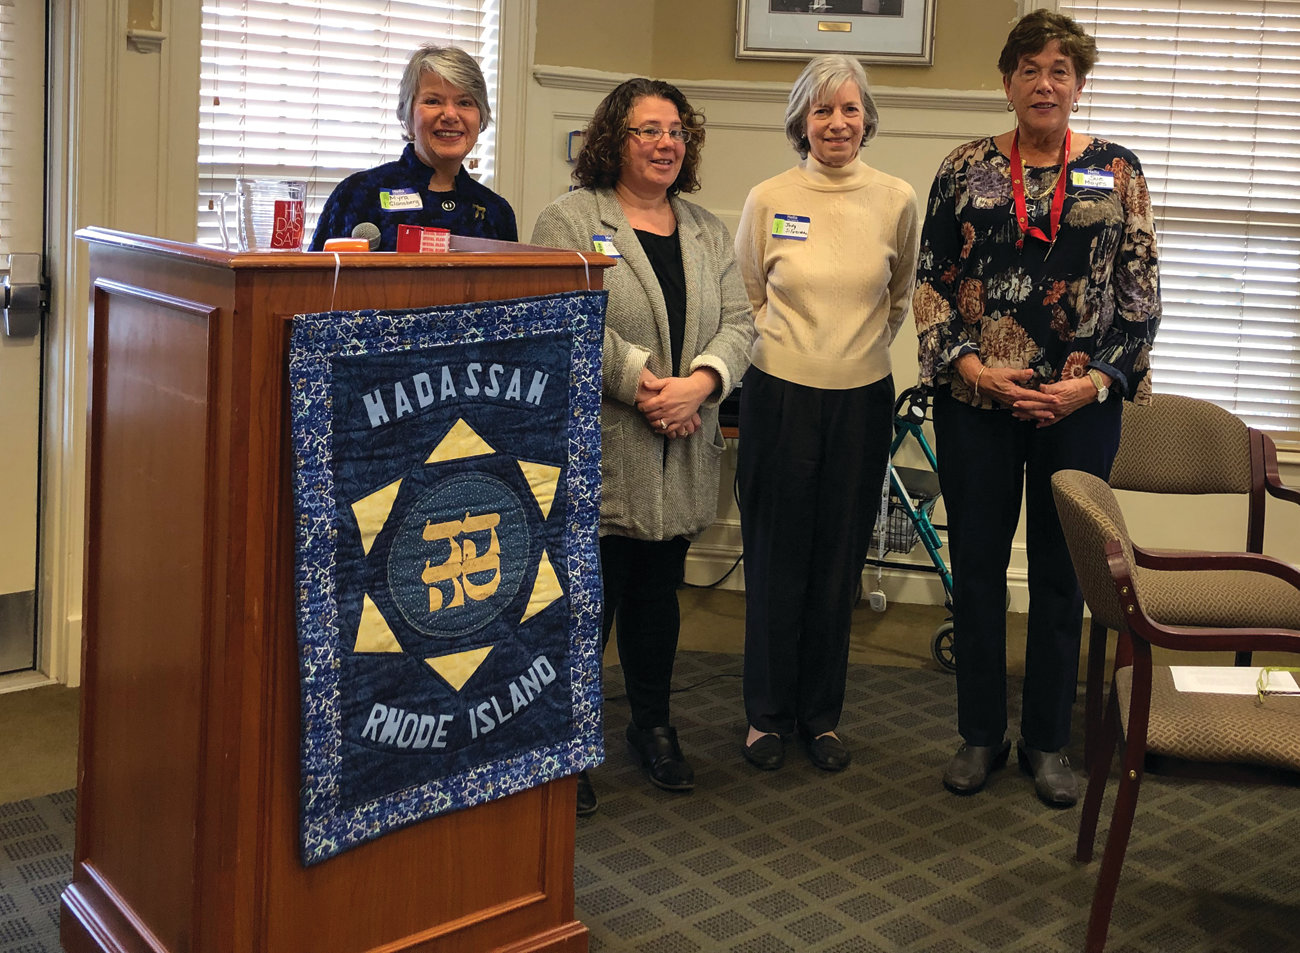 THE NEW OFFICERS: Myra Glansberg inducts Leah Ross-Coke, Judy Silverman and Sue Mayes as officers for Hadassah Rhode Island for the coming year.